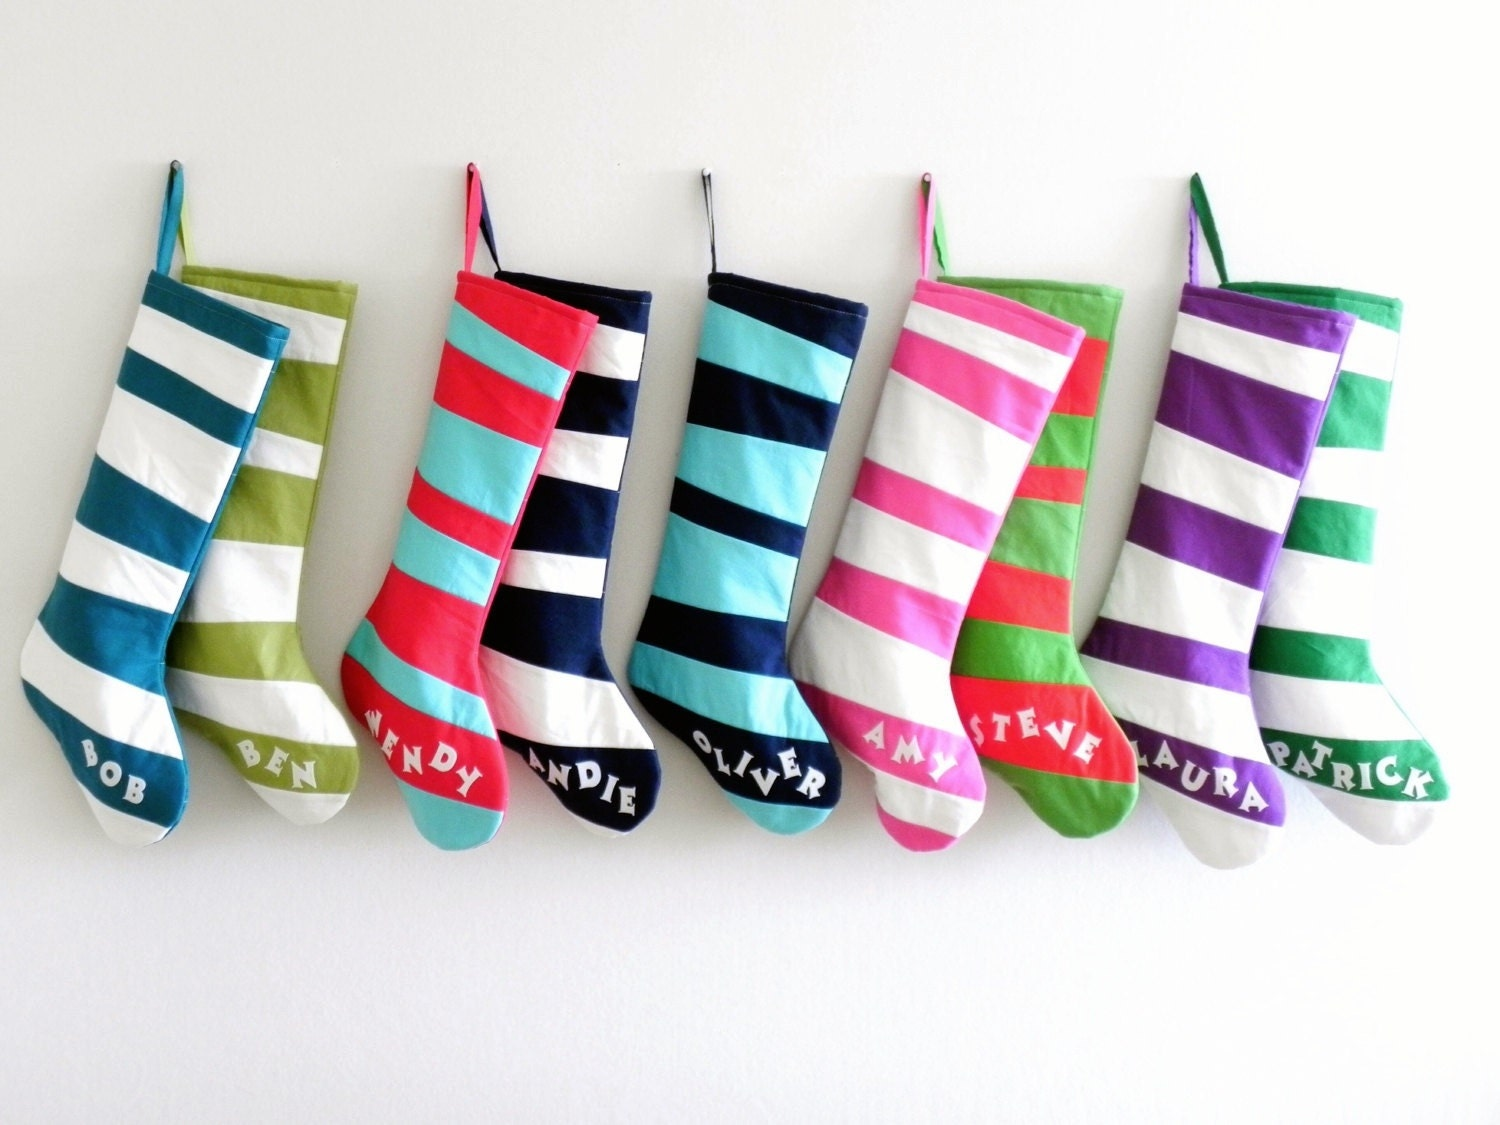 personalized christmas stocking personalized stocking kids girls boys family stockings modern wonky striped stocking inspired by dr seuss - Girls Christmas Stocking